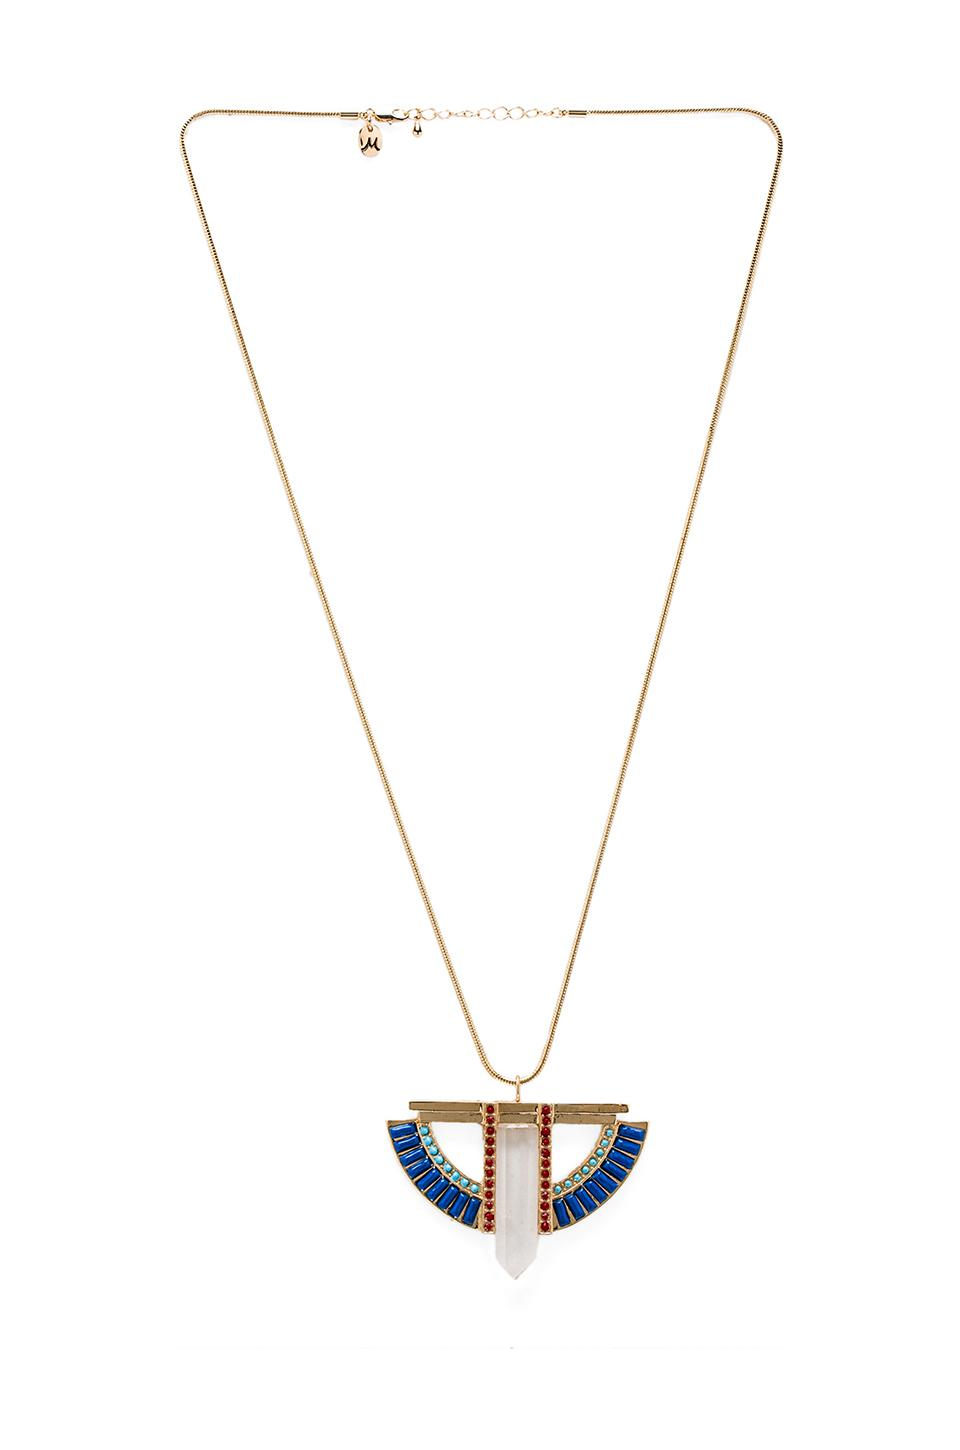 Nicole Meng Architecture Necklace in Gold